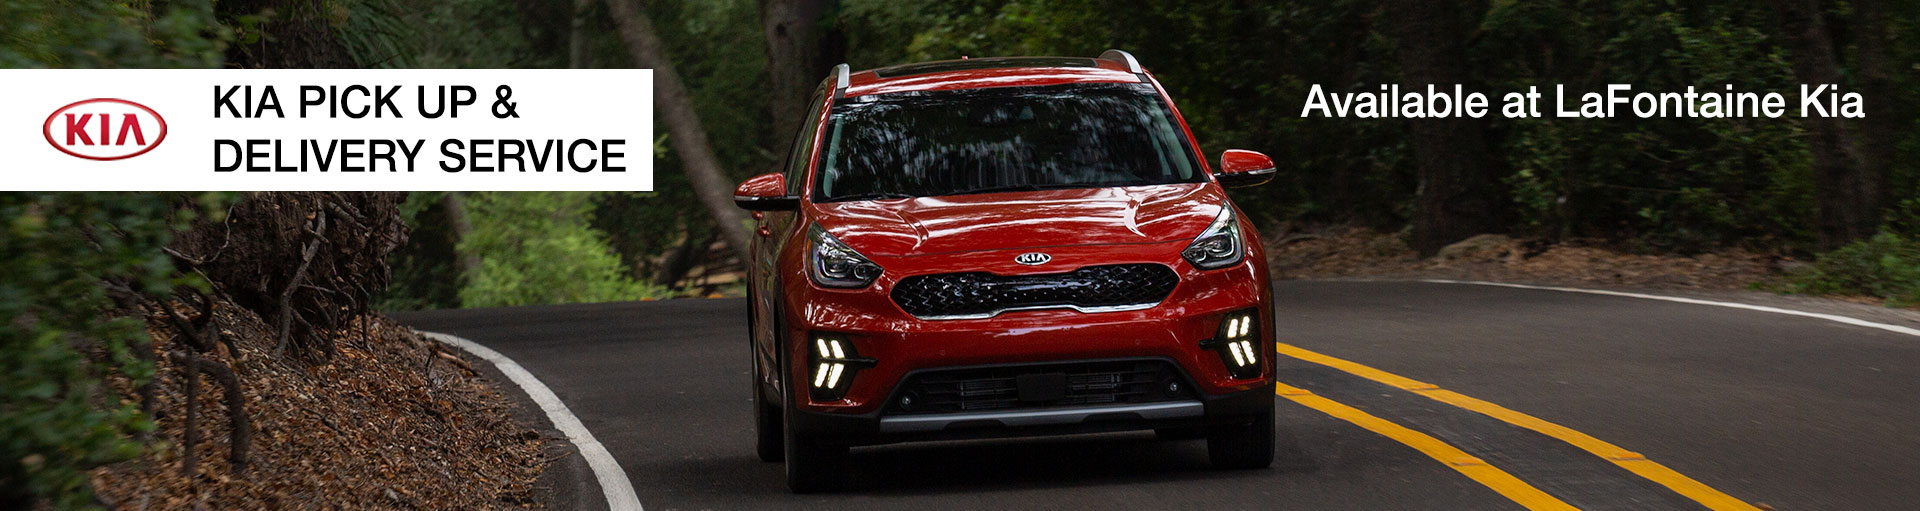 Kia Vehicle Pick Up & Delivery